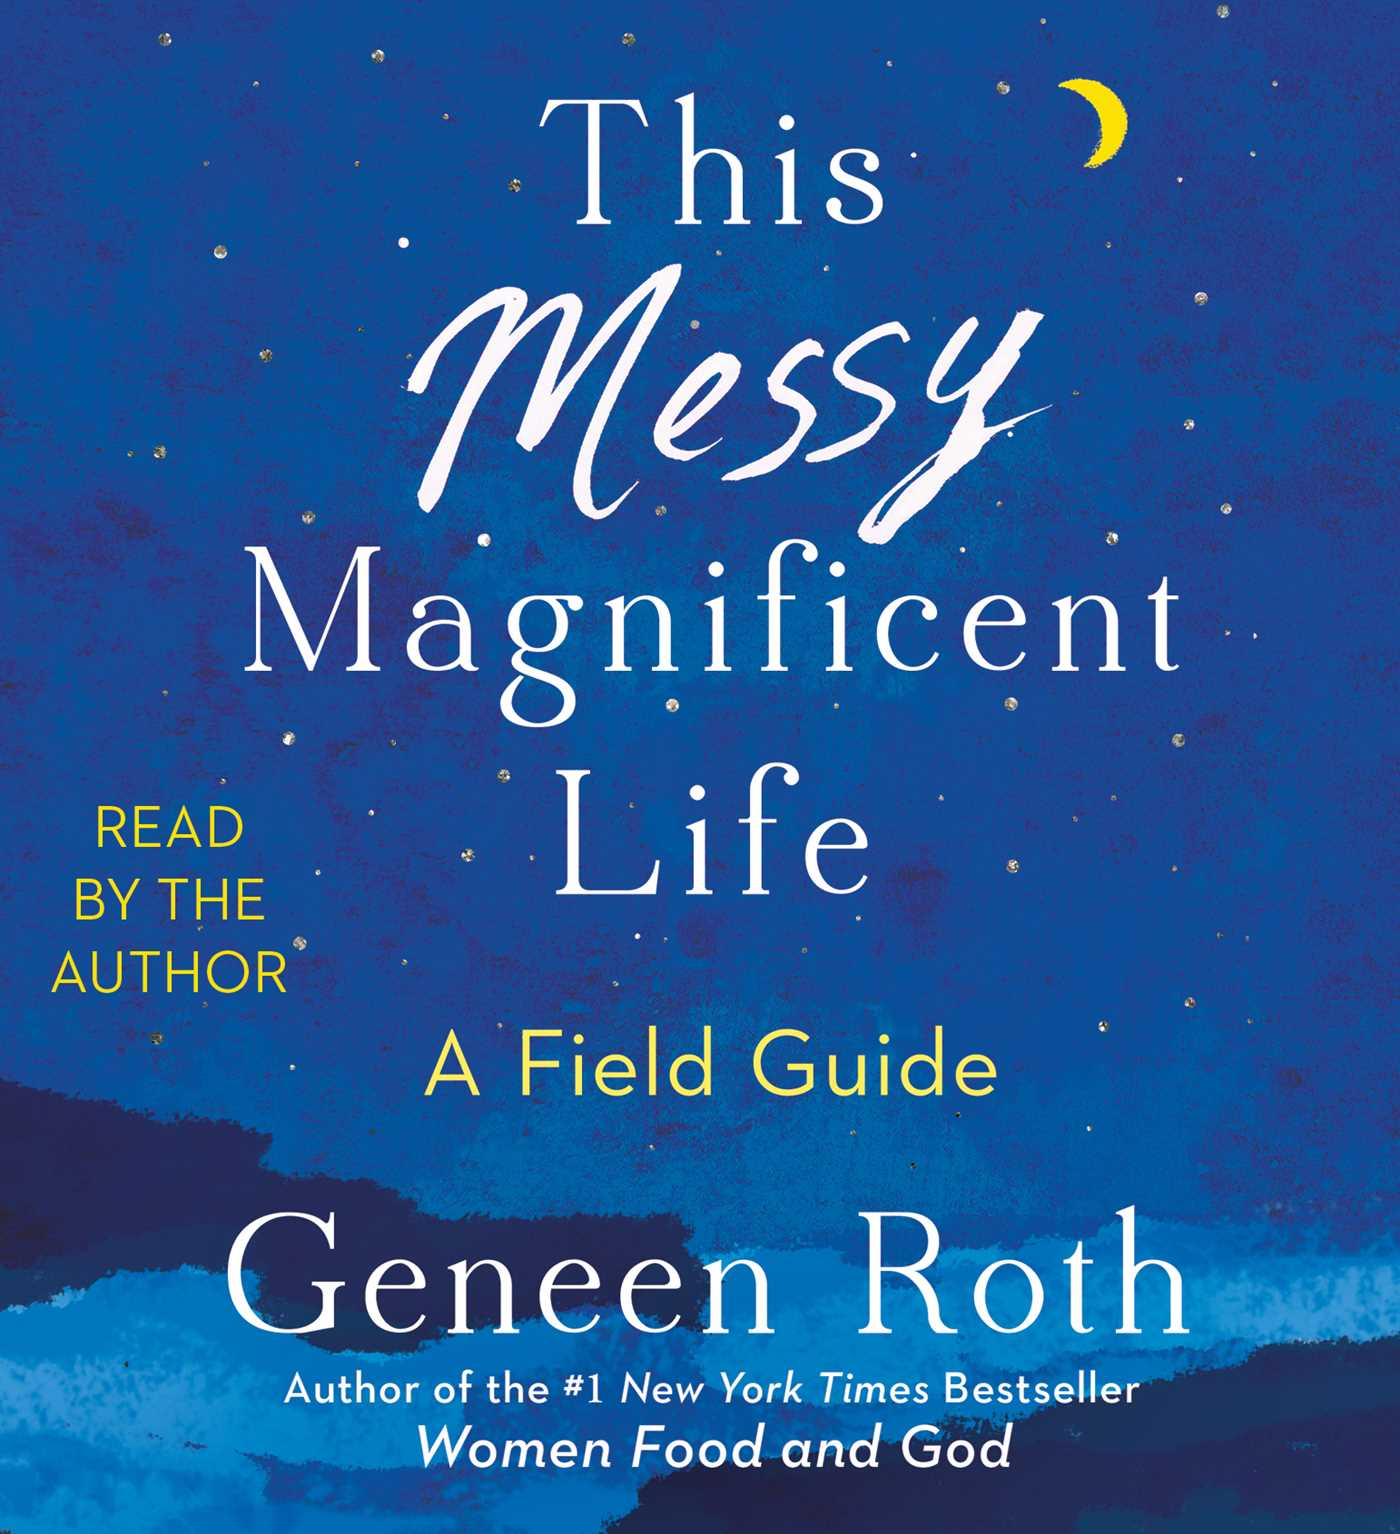 This messy magnificent life 9781508244851 hr